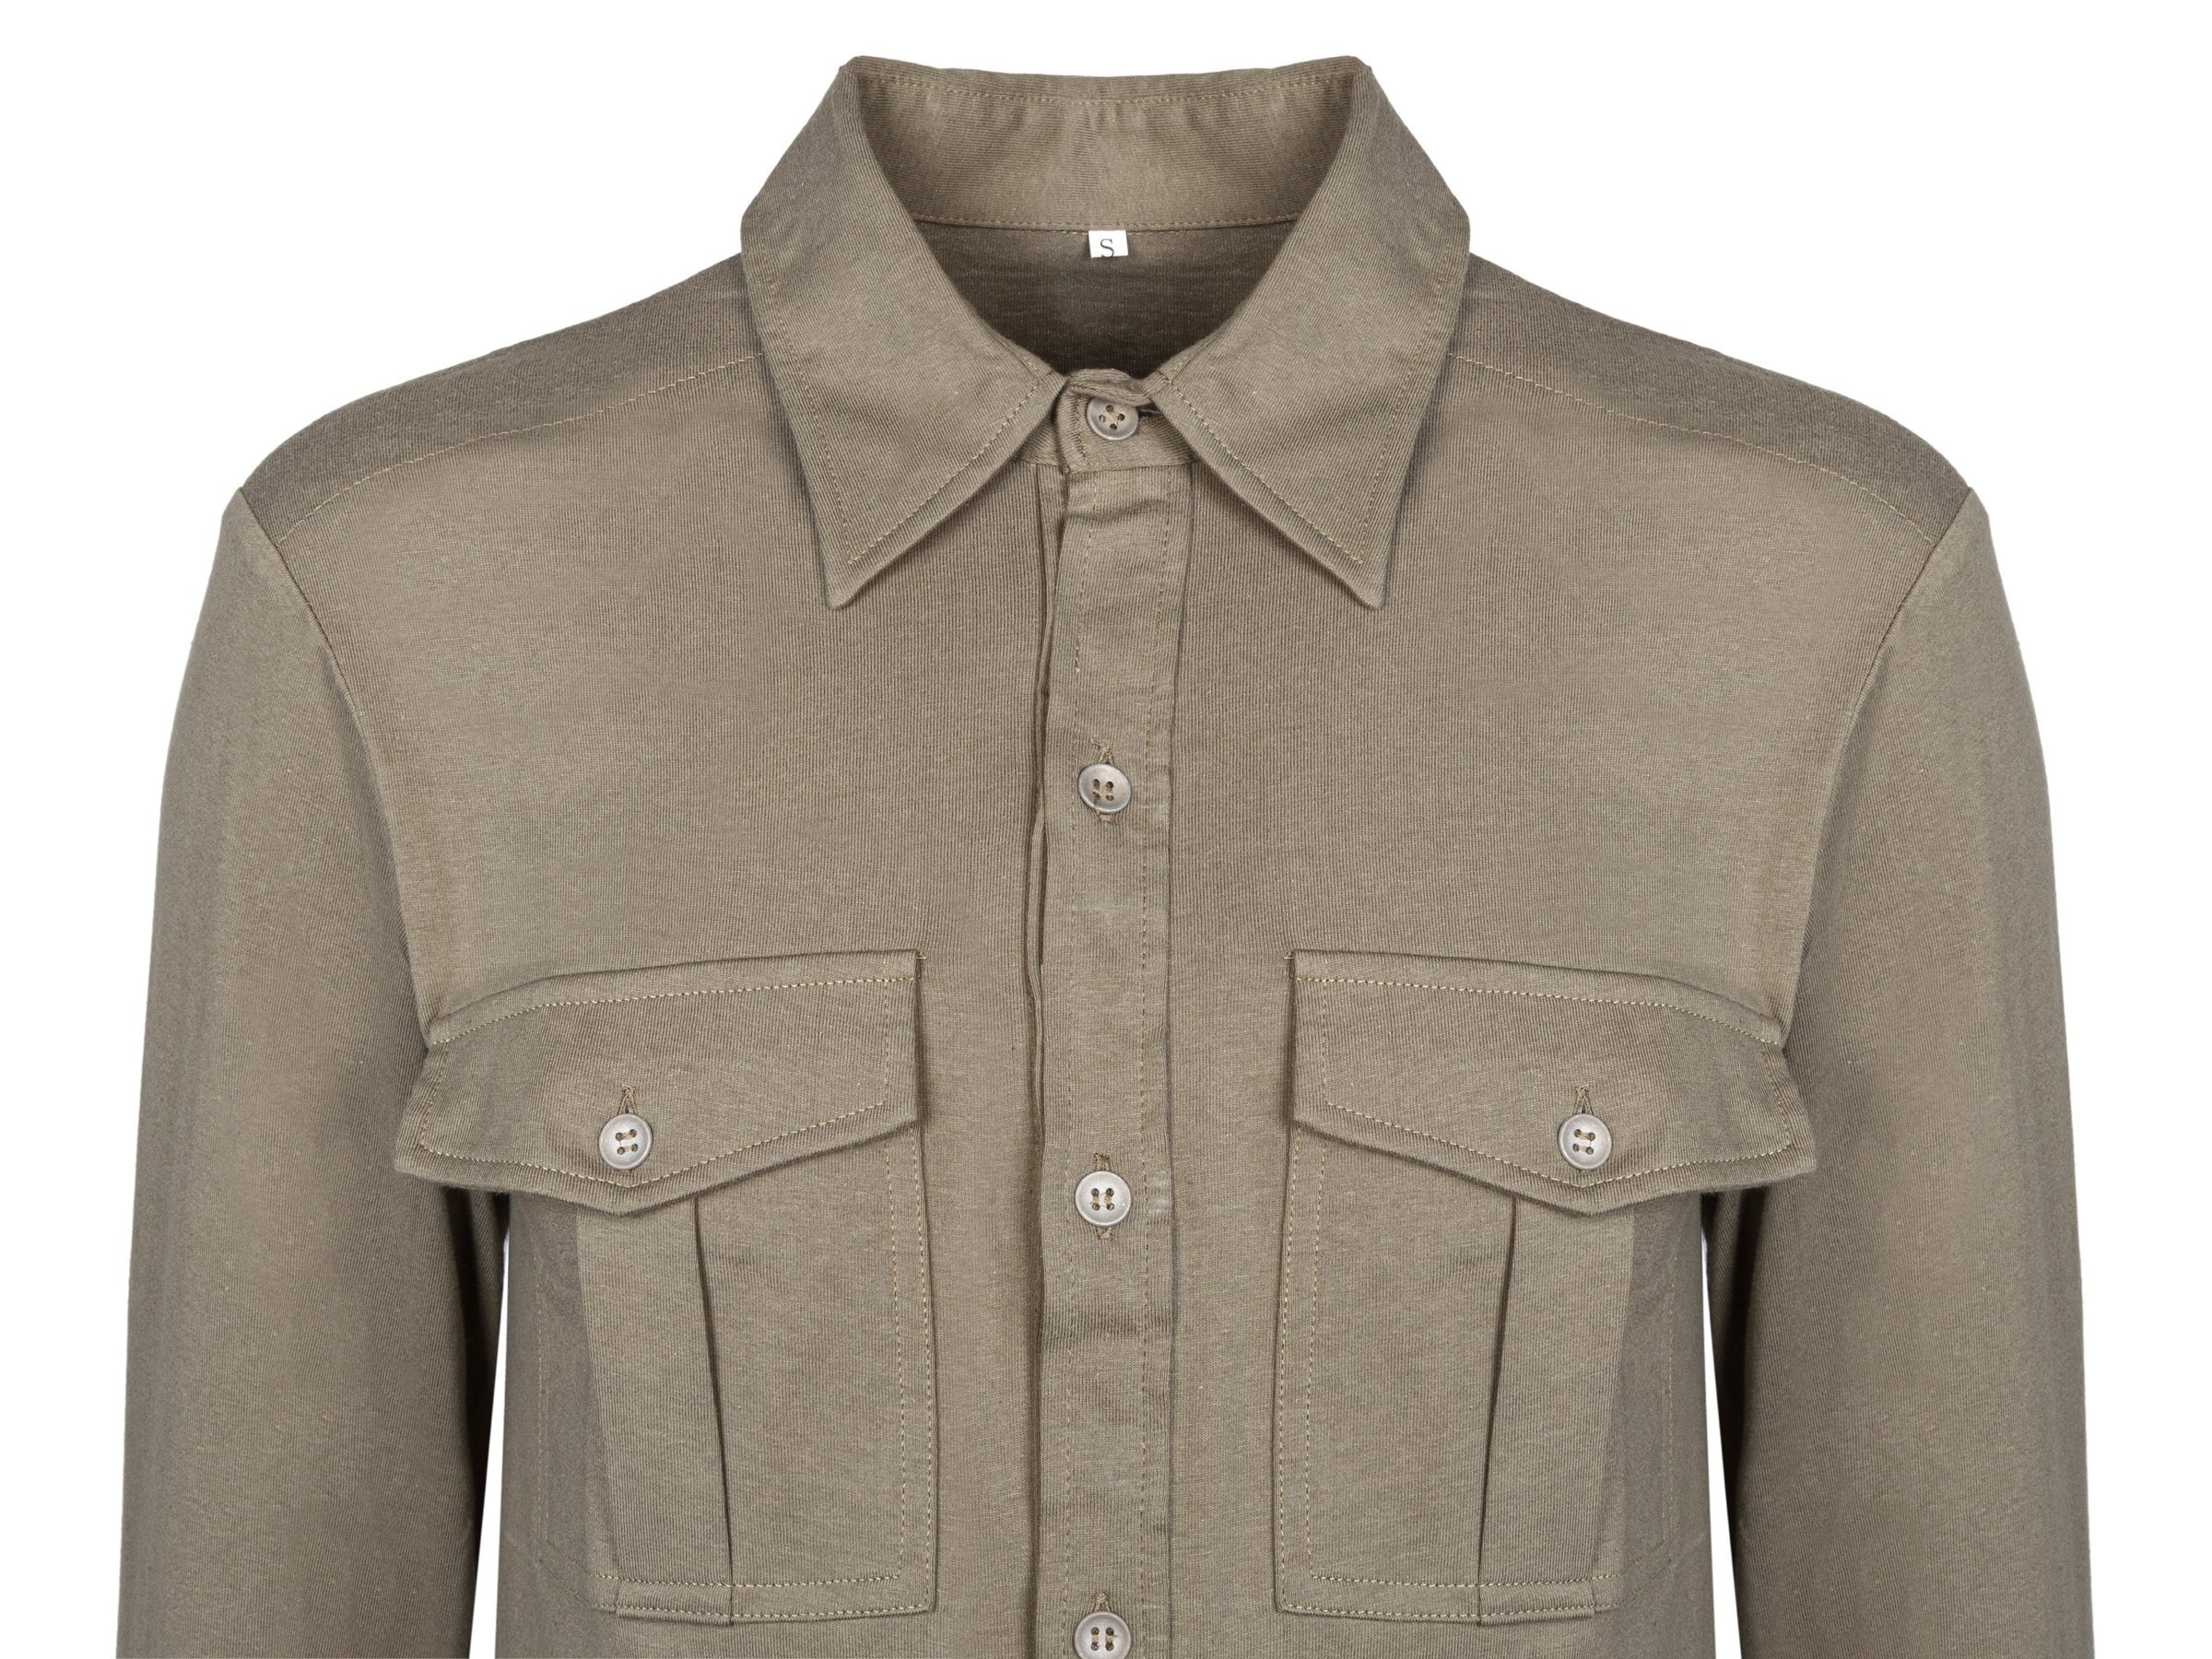 M41 Hemd - WH SS shirt with pockets - repro S   Germany  1933 ... 29c0fc0e4d